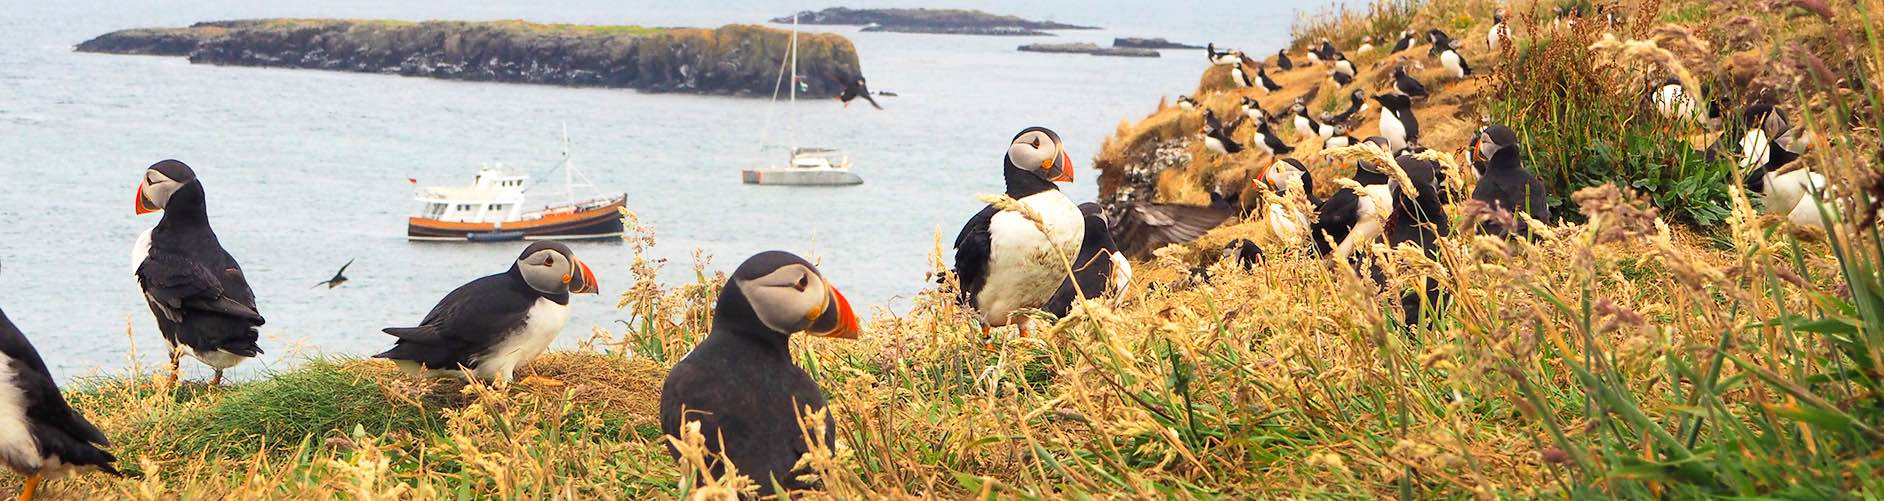 Mini Cruises Scotland | Argyll Cruising | Puffins |Lunga